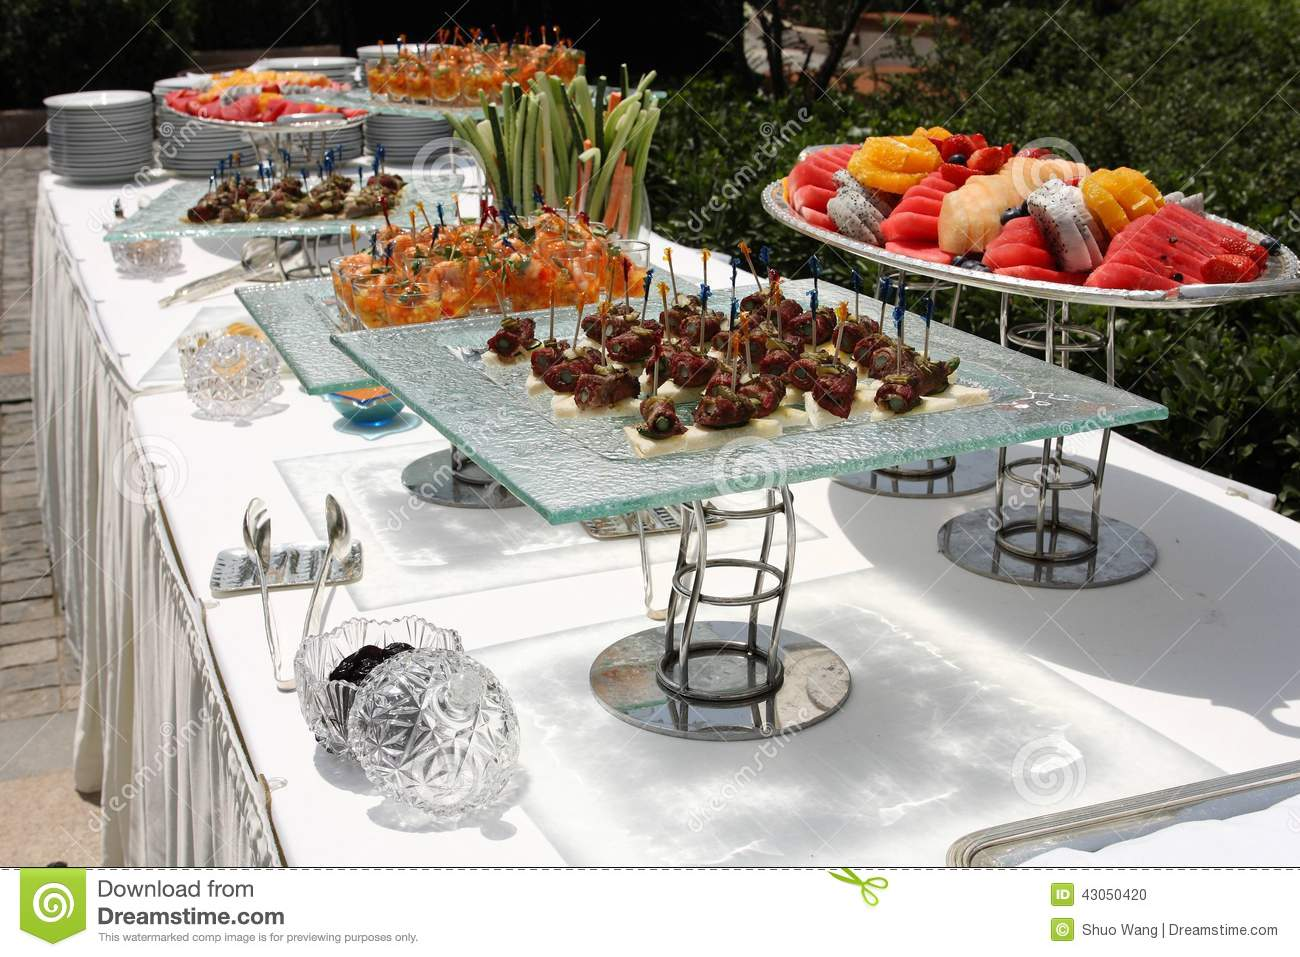 Catering royalty free stock photo for Meal outdoors